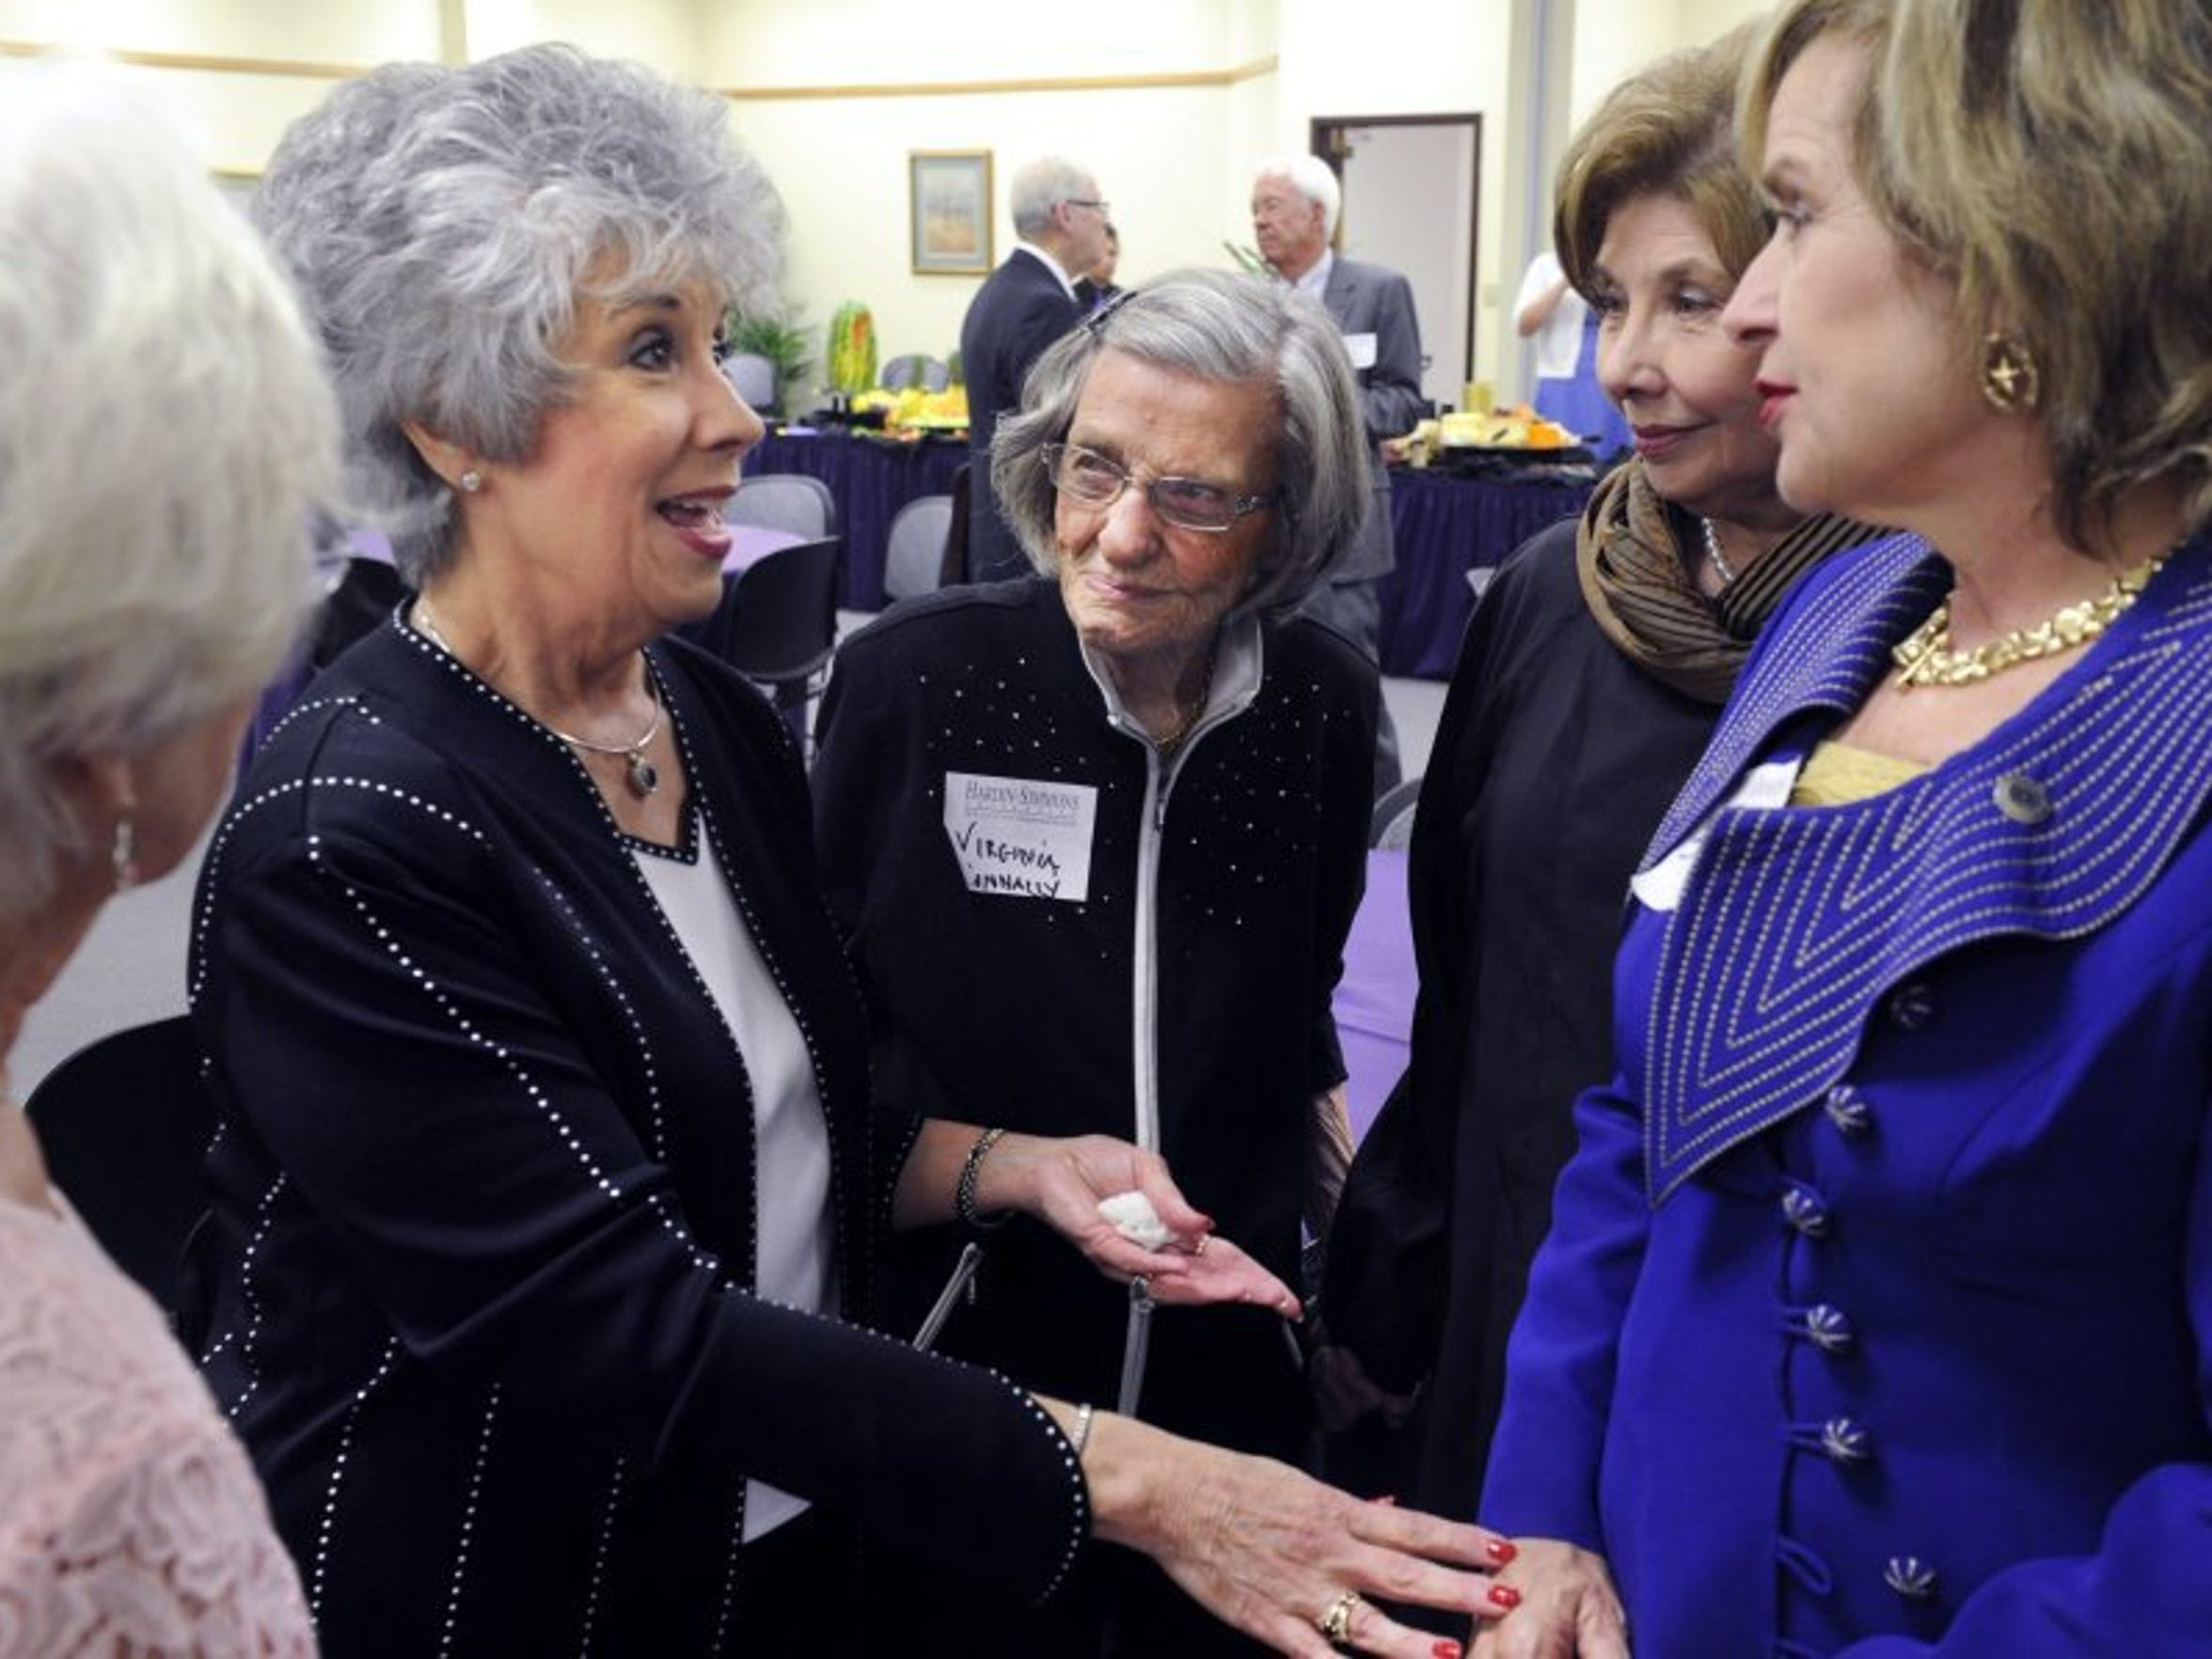 Dr. Virginia Connally, center, listens as Carol Hall speaks with then-District 71 state Rep. Susan King at a Lanny Hall farewell event on campus in 2016.